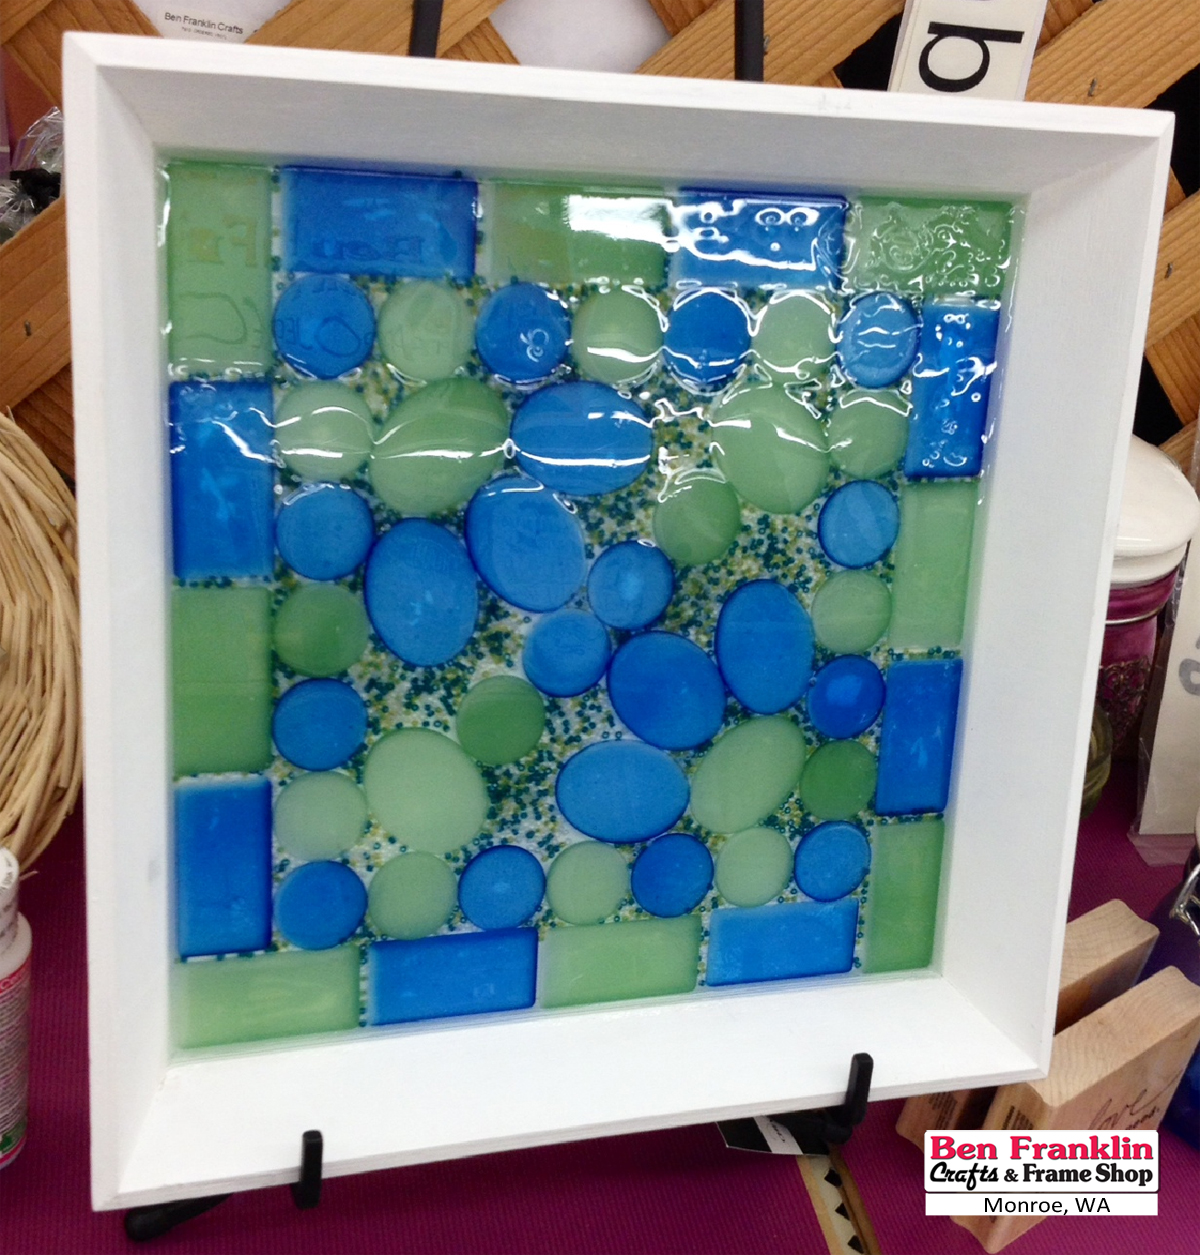 Diy Picture Frame With Glass Ben Franklin Crafts And Frame Shop Monroe Wa Diy Sea